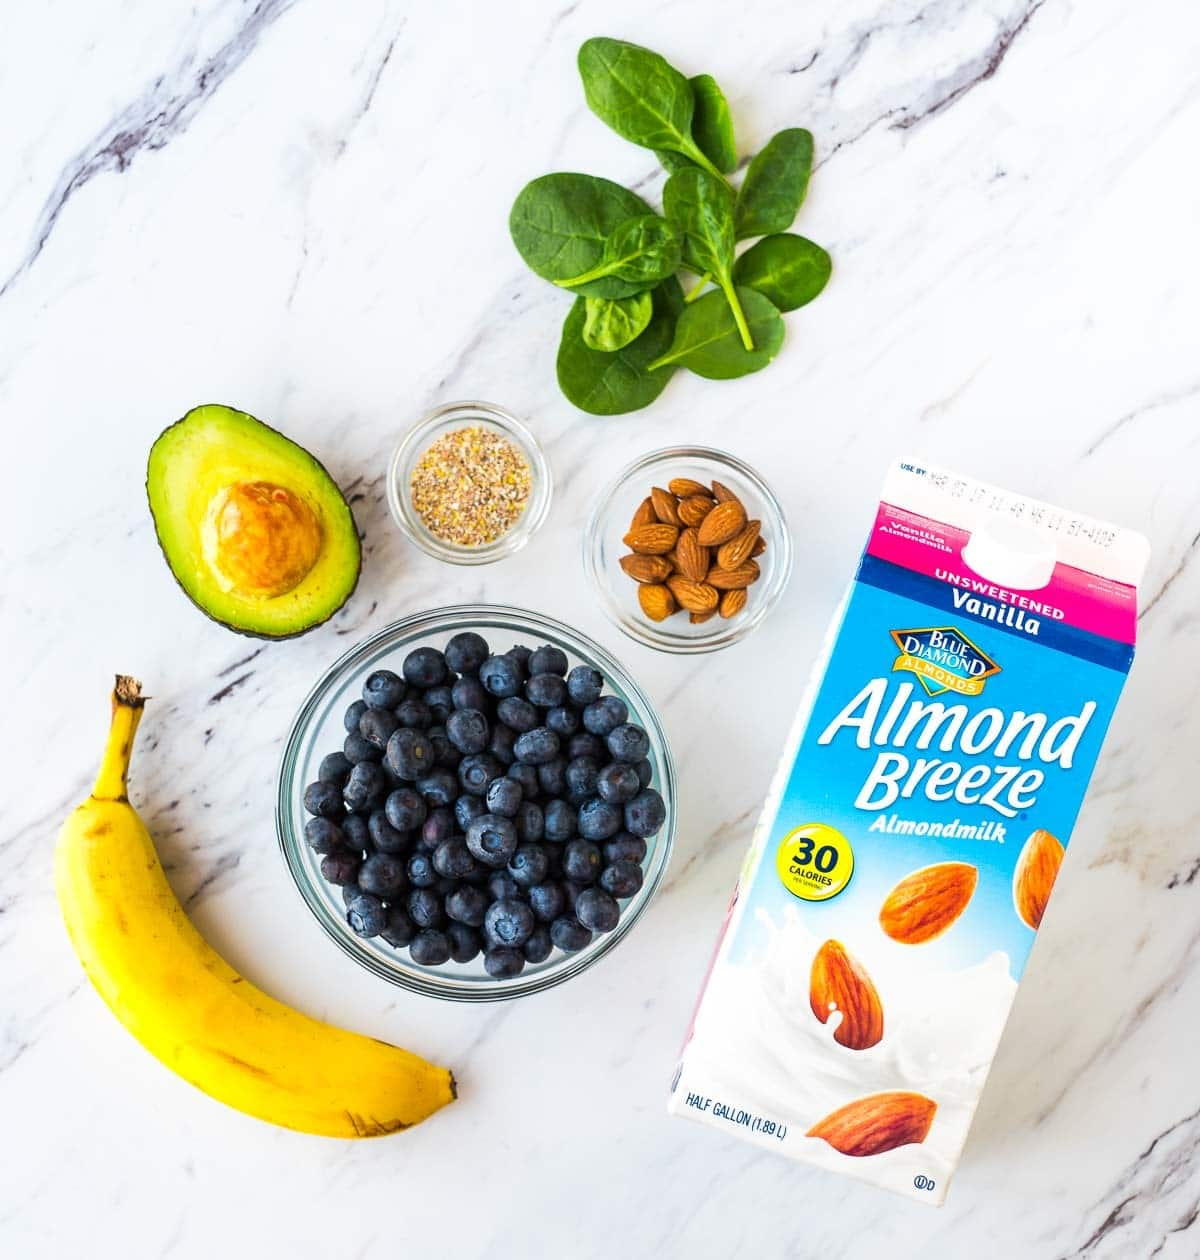 Hydrating Blueberry Avocado Banana Smoothie. Get bright, natural glowing skin with this delicious green smoothie recipe! Made with spinach, healthy fats, and antioxidants. Recipe at wellplated.com | @wellplated